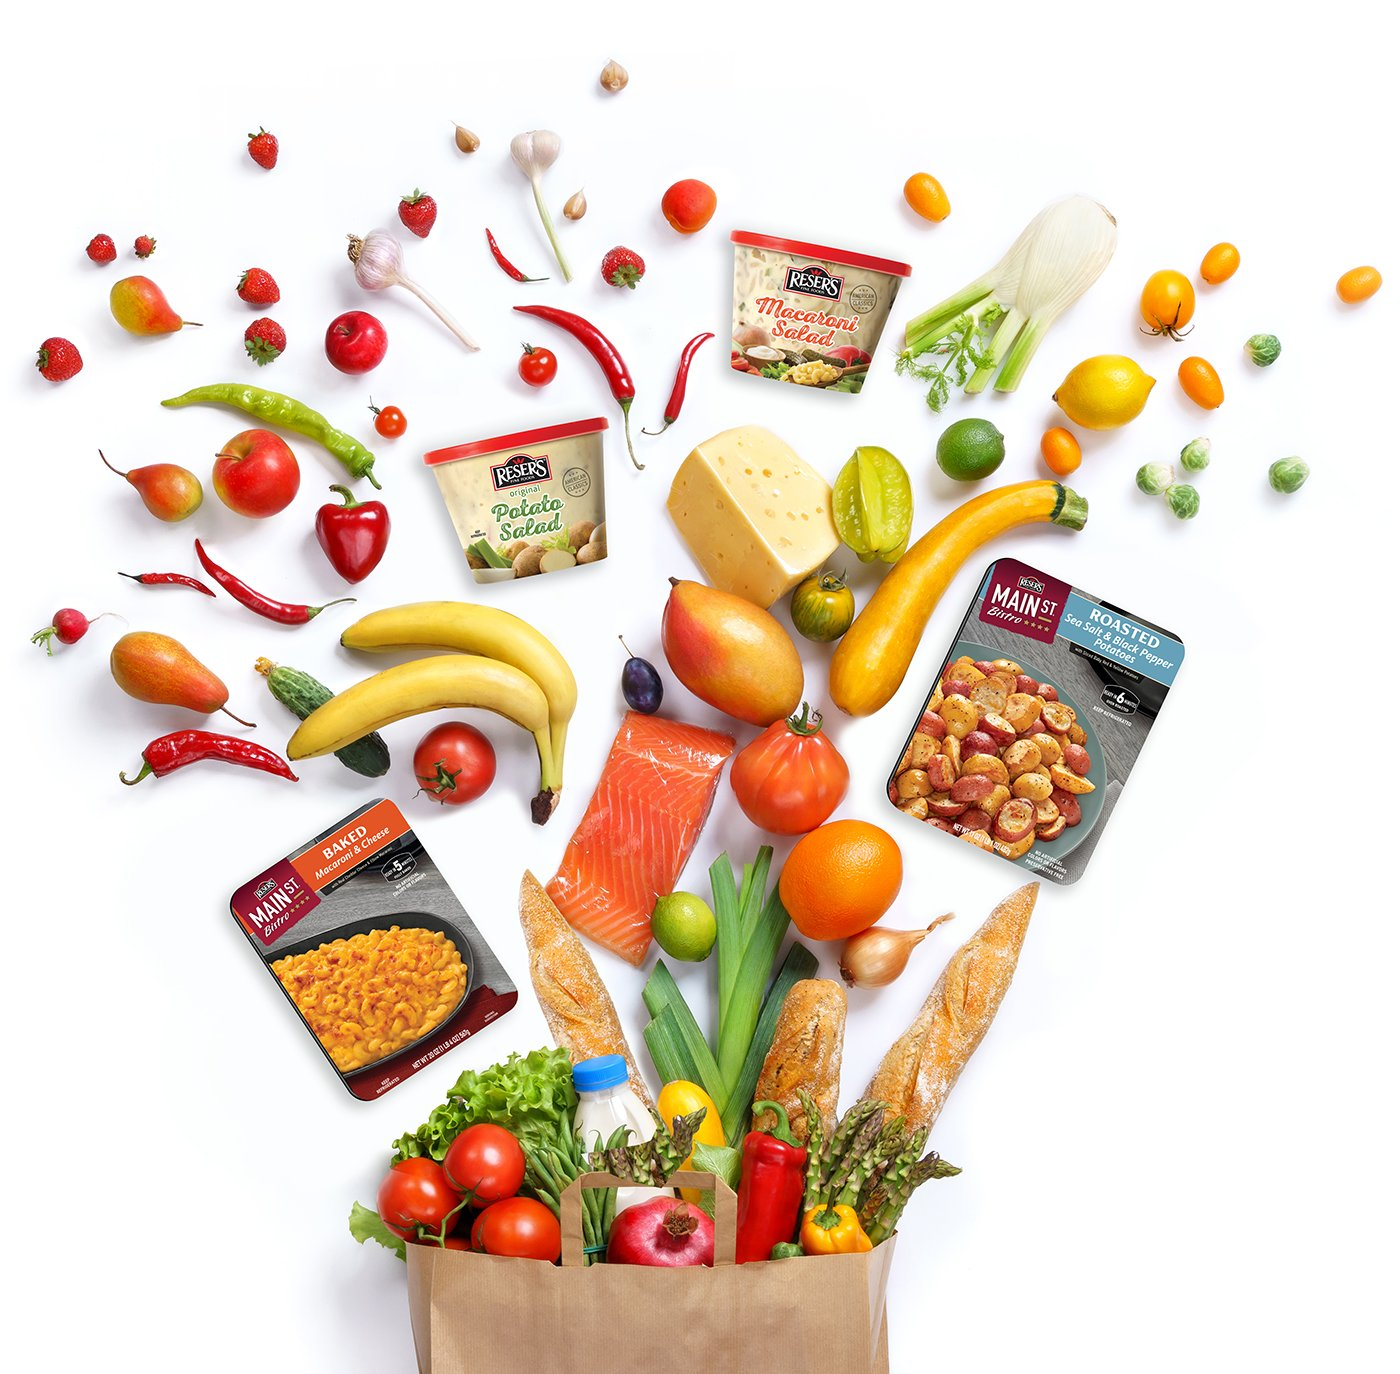 Enter to win groceries for a year!